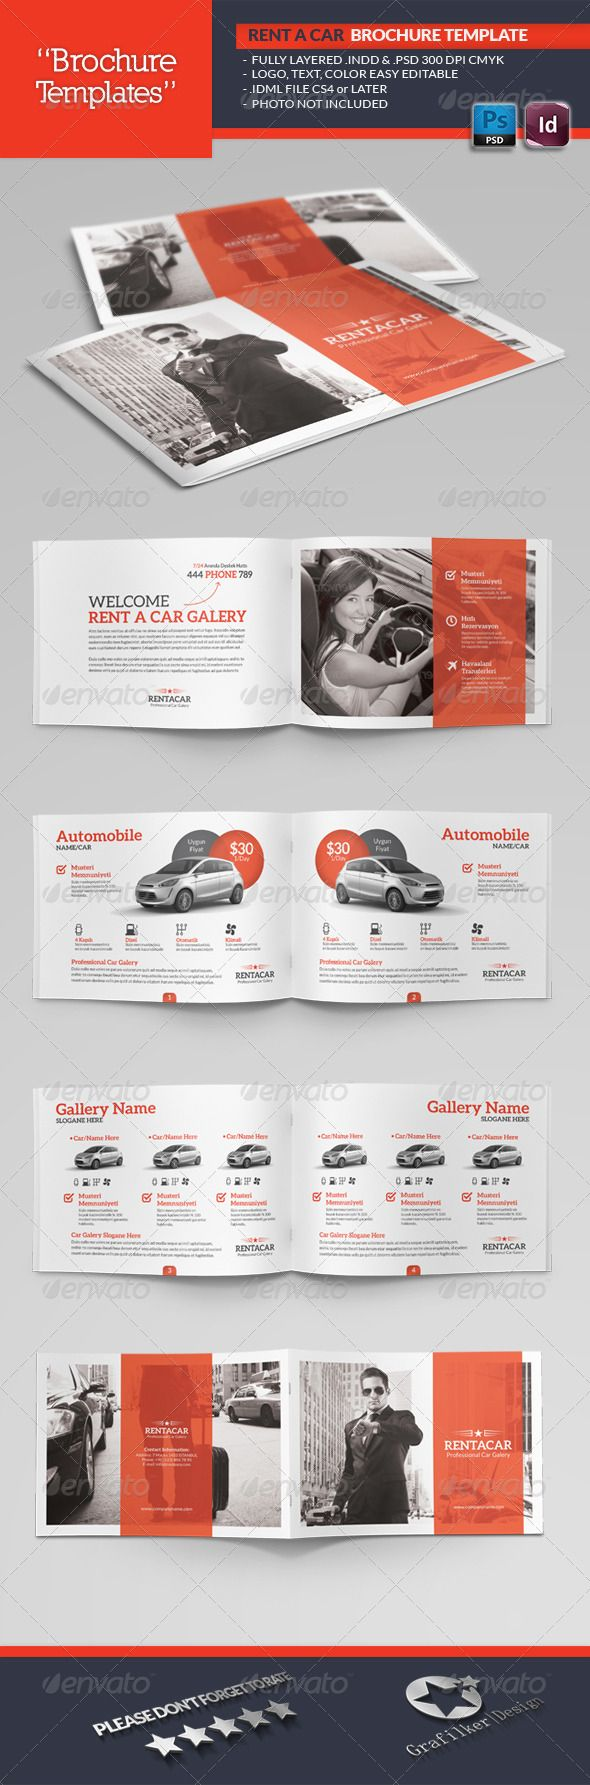 Rent A Car Brochure Template #GraphicRiver Rent A Car Brochure Template Fully layered INDD Fully layered PSD 300 Dpi, CMYK IDML format open Indesign CS4 or later Completely editable, print ready Text/Font or Color can be altered as needed All Image are in vector format, so can customise easily Photos are not included in the file Font File: Aleo Font: .behance /gallery/ALEO-Free-Font-Family/8018673 Lato Font: .fontsquirrel /fonts/lato Social-Logos: .dafont /social-logos.font Help.txt file Created